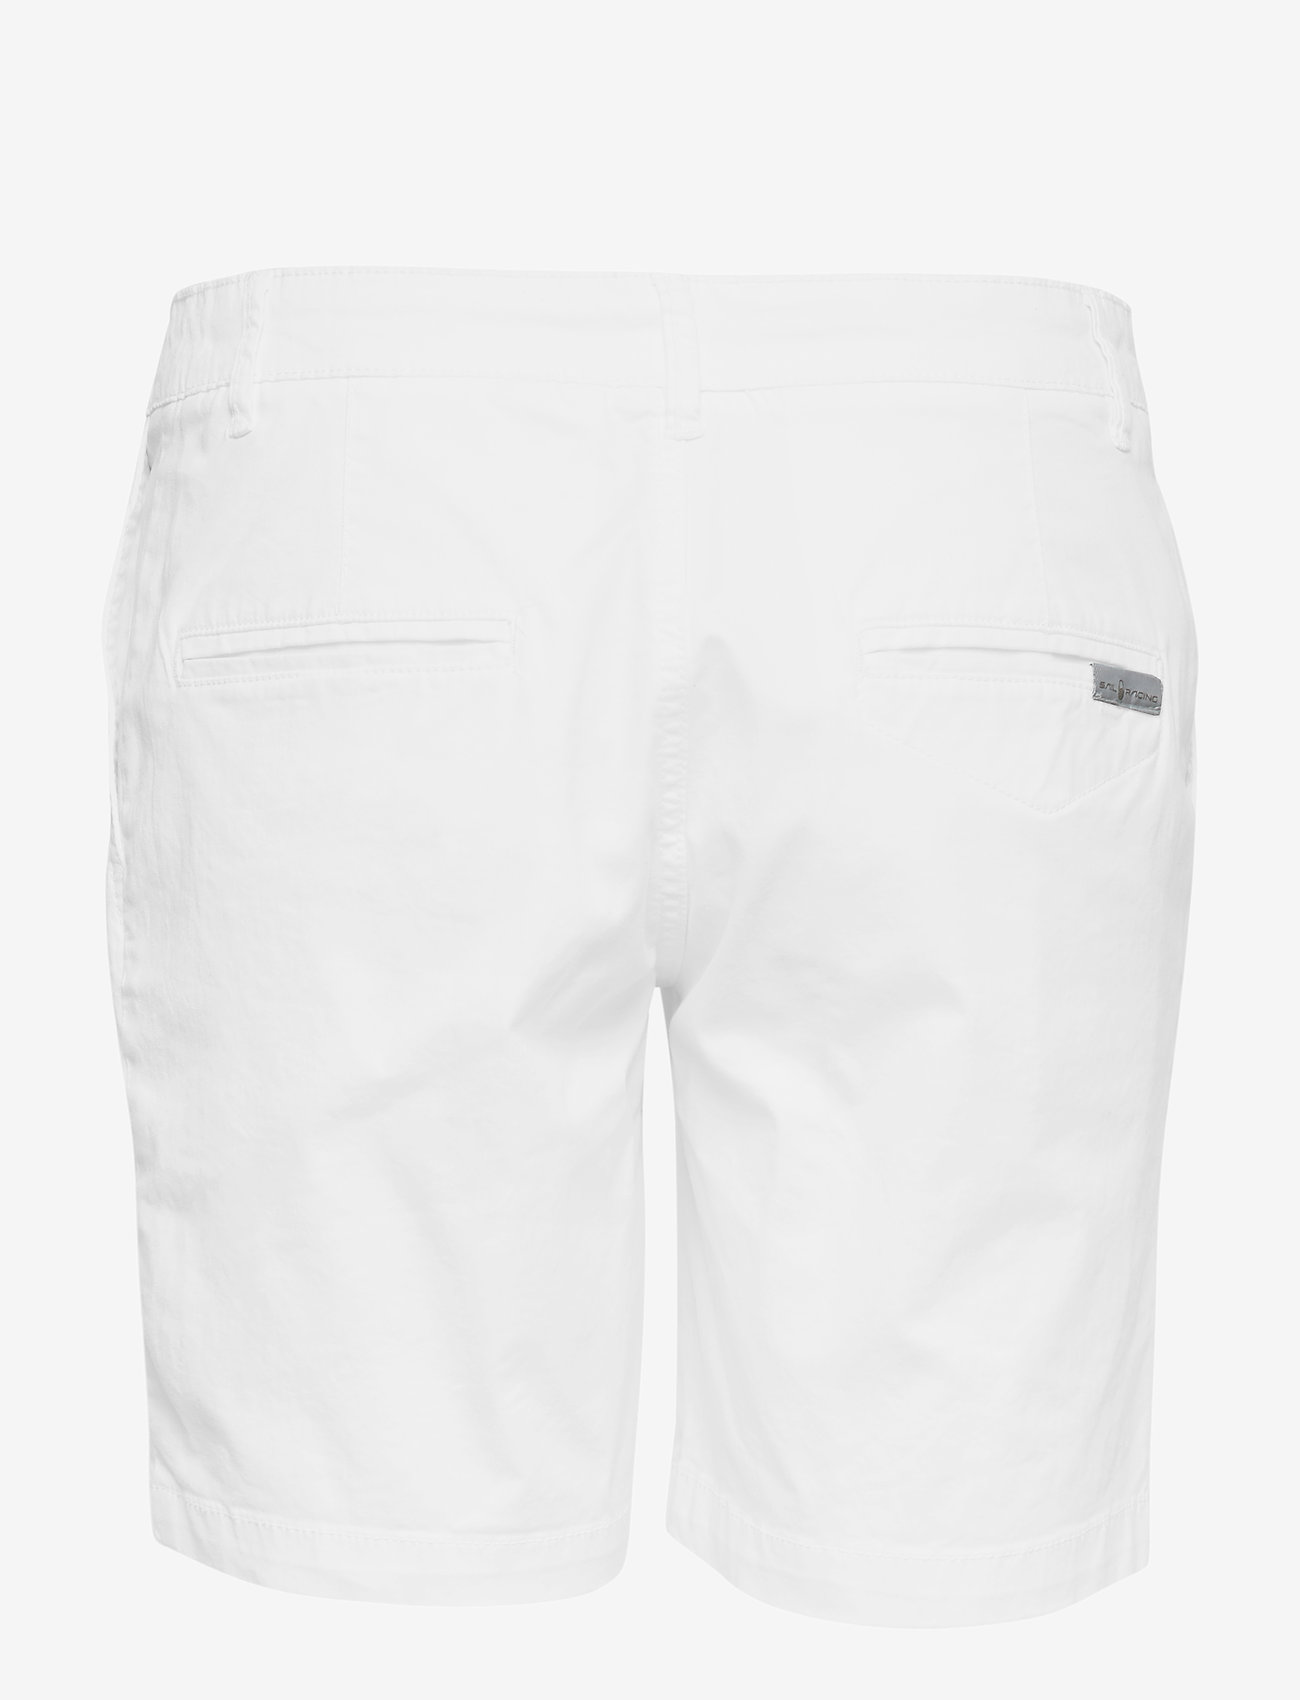 Sail Racing - W GALE CHINO SHORTS - chino shorts - white - 1